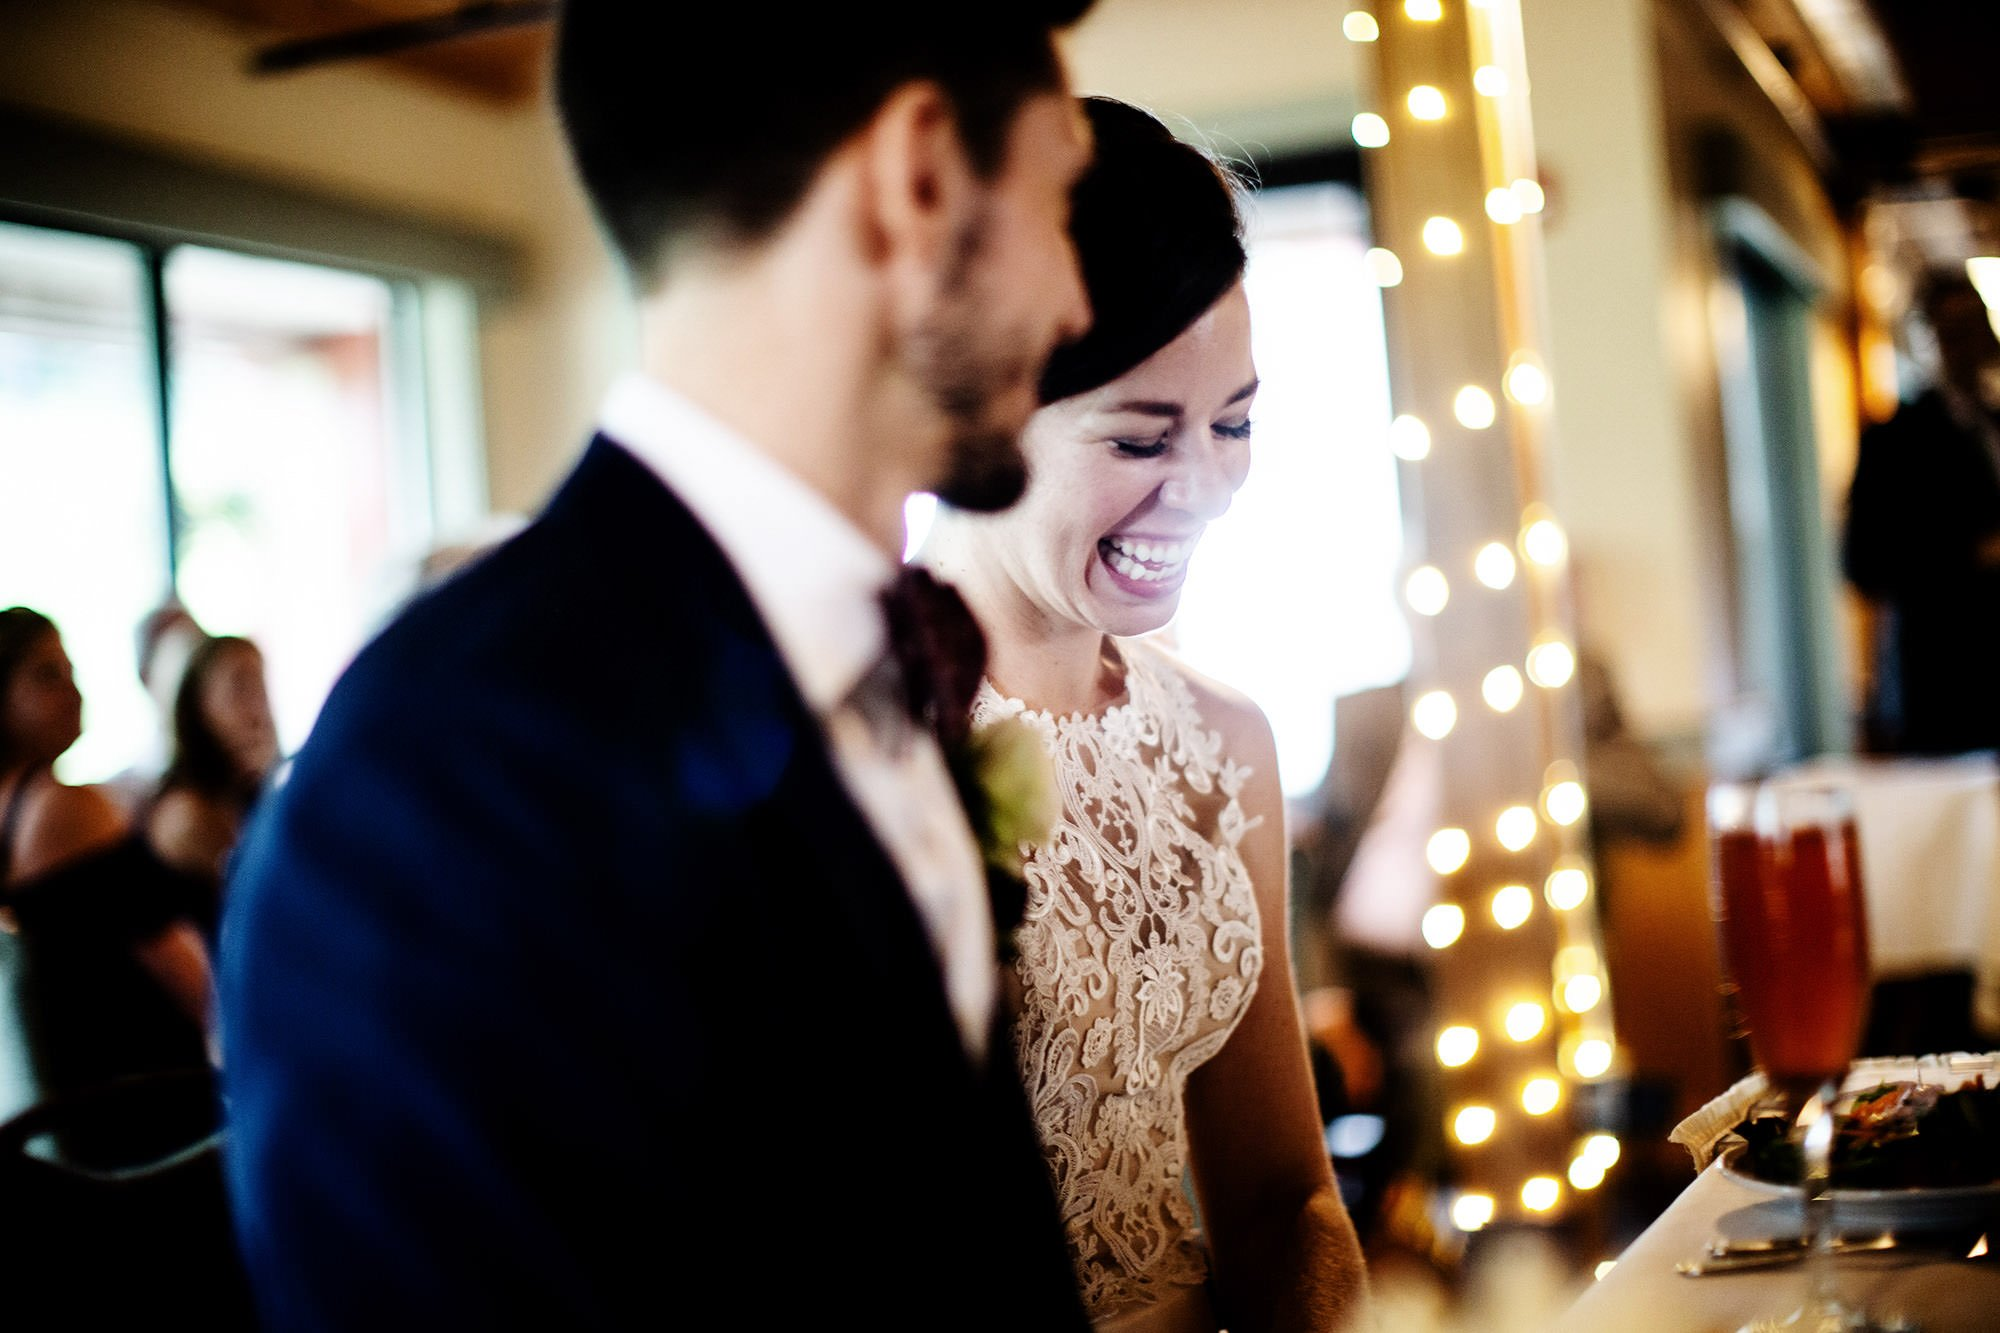 The bride and groom share a laugh during toasts at their ski lodge wedding at Wachusett Mountain.